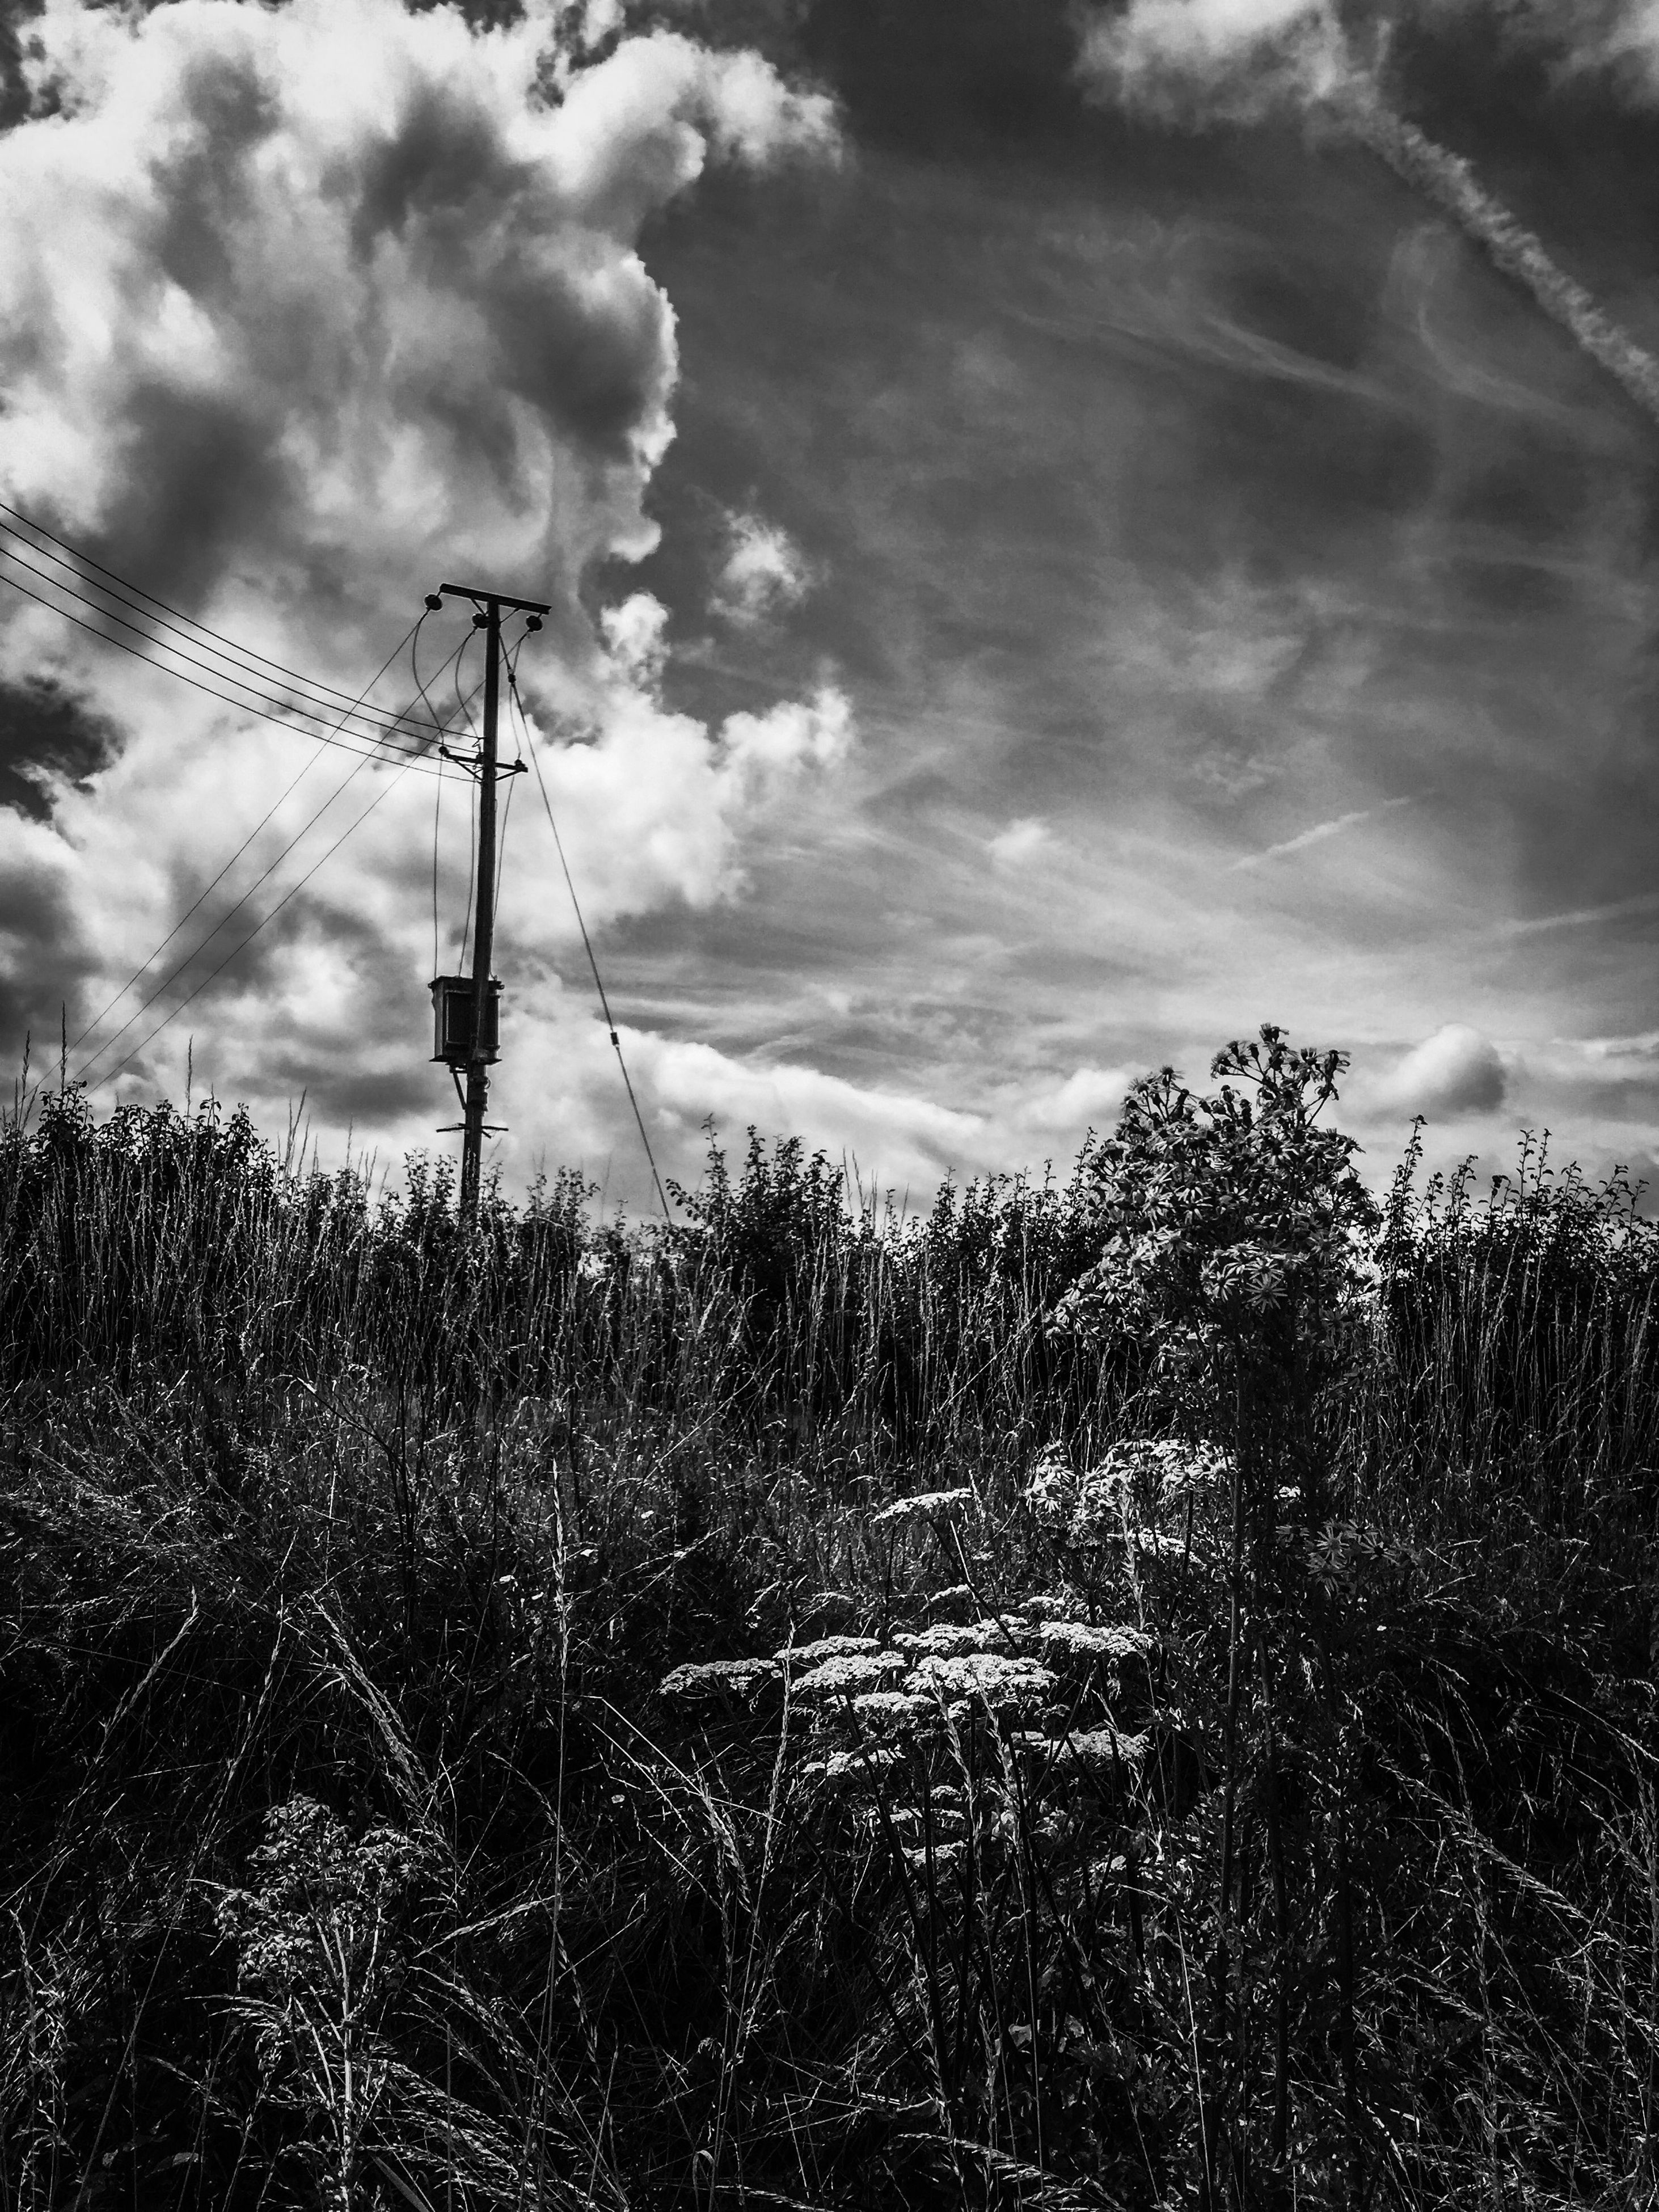 sky, fuel and power generation, electricity pylon, cloud - sky, electricity, cloudy, power line, technology, field, landscape, power supply, nature, tranquility, tranquil scene, weather, tree, windmill, rural scene, cloud, growth